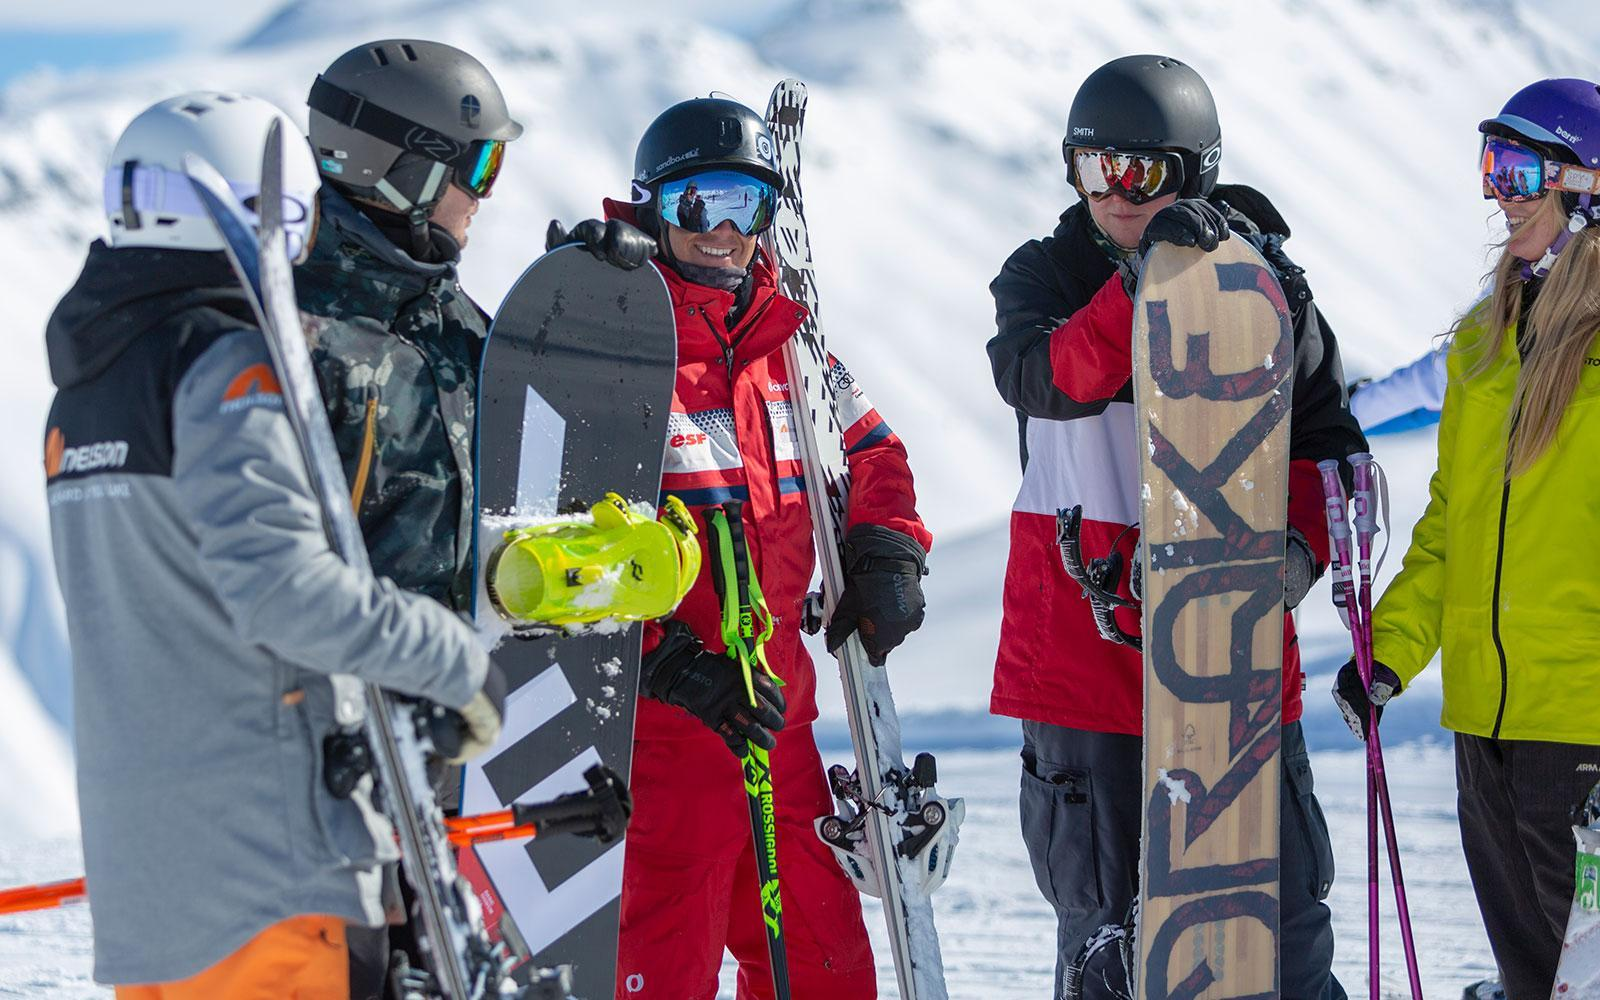 group of skiers and snowboarder